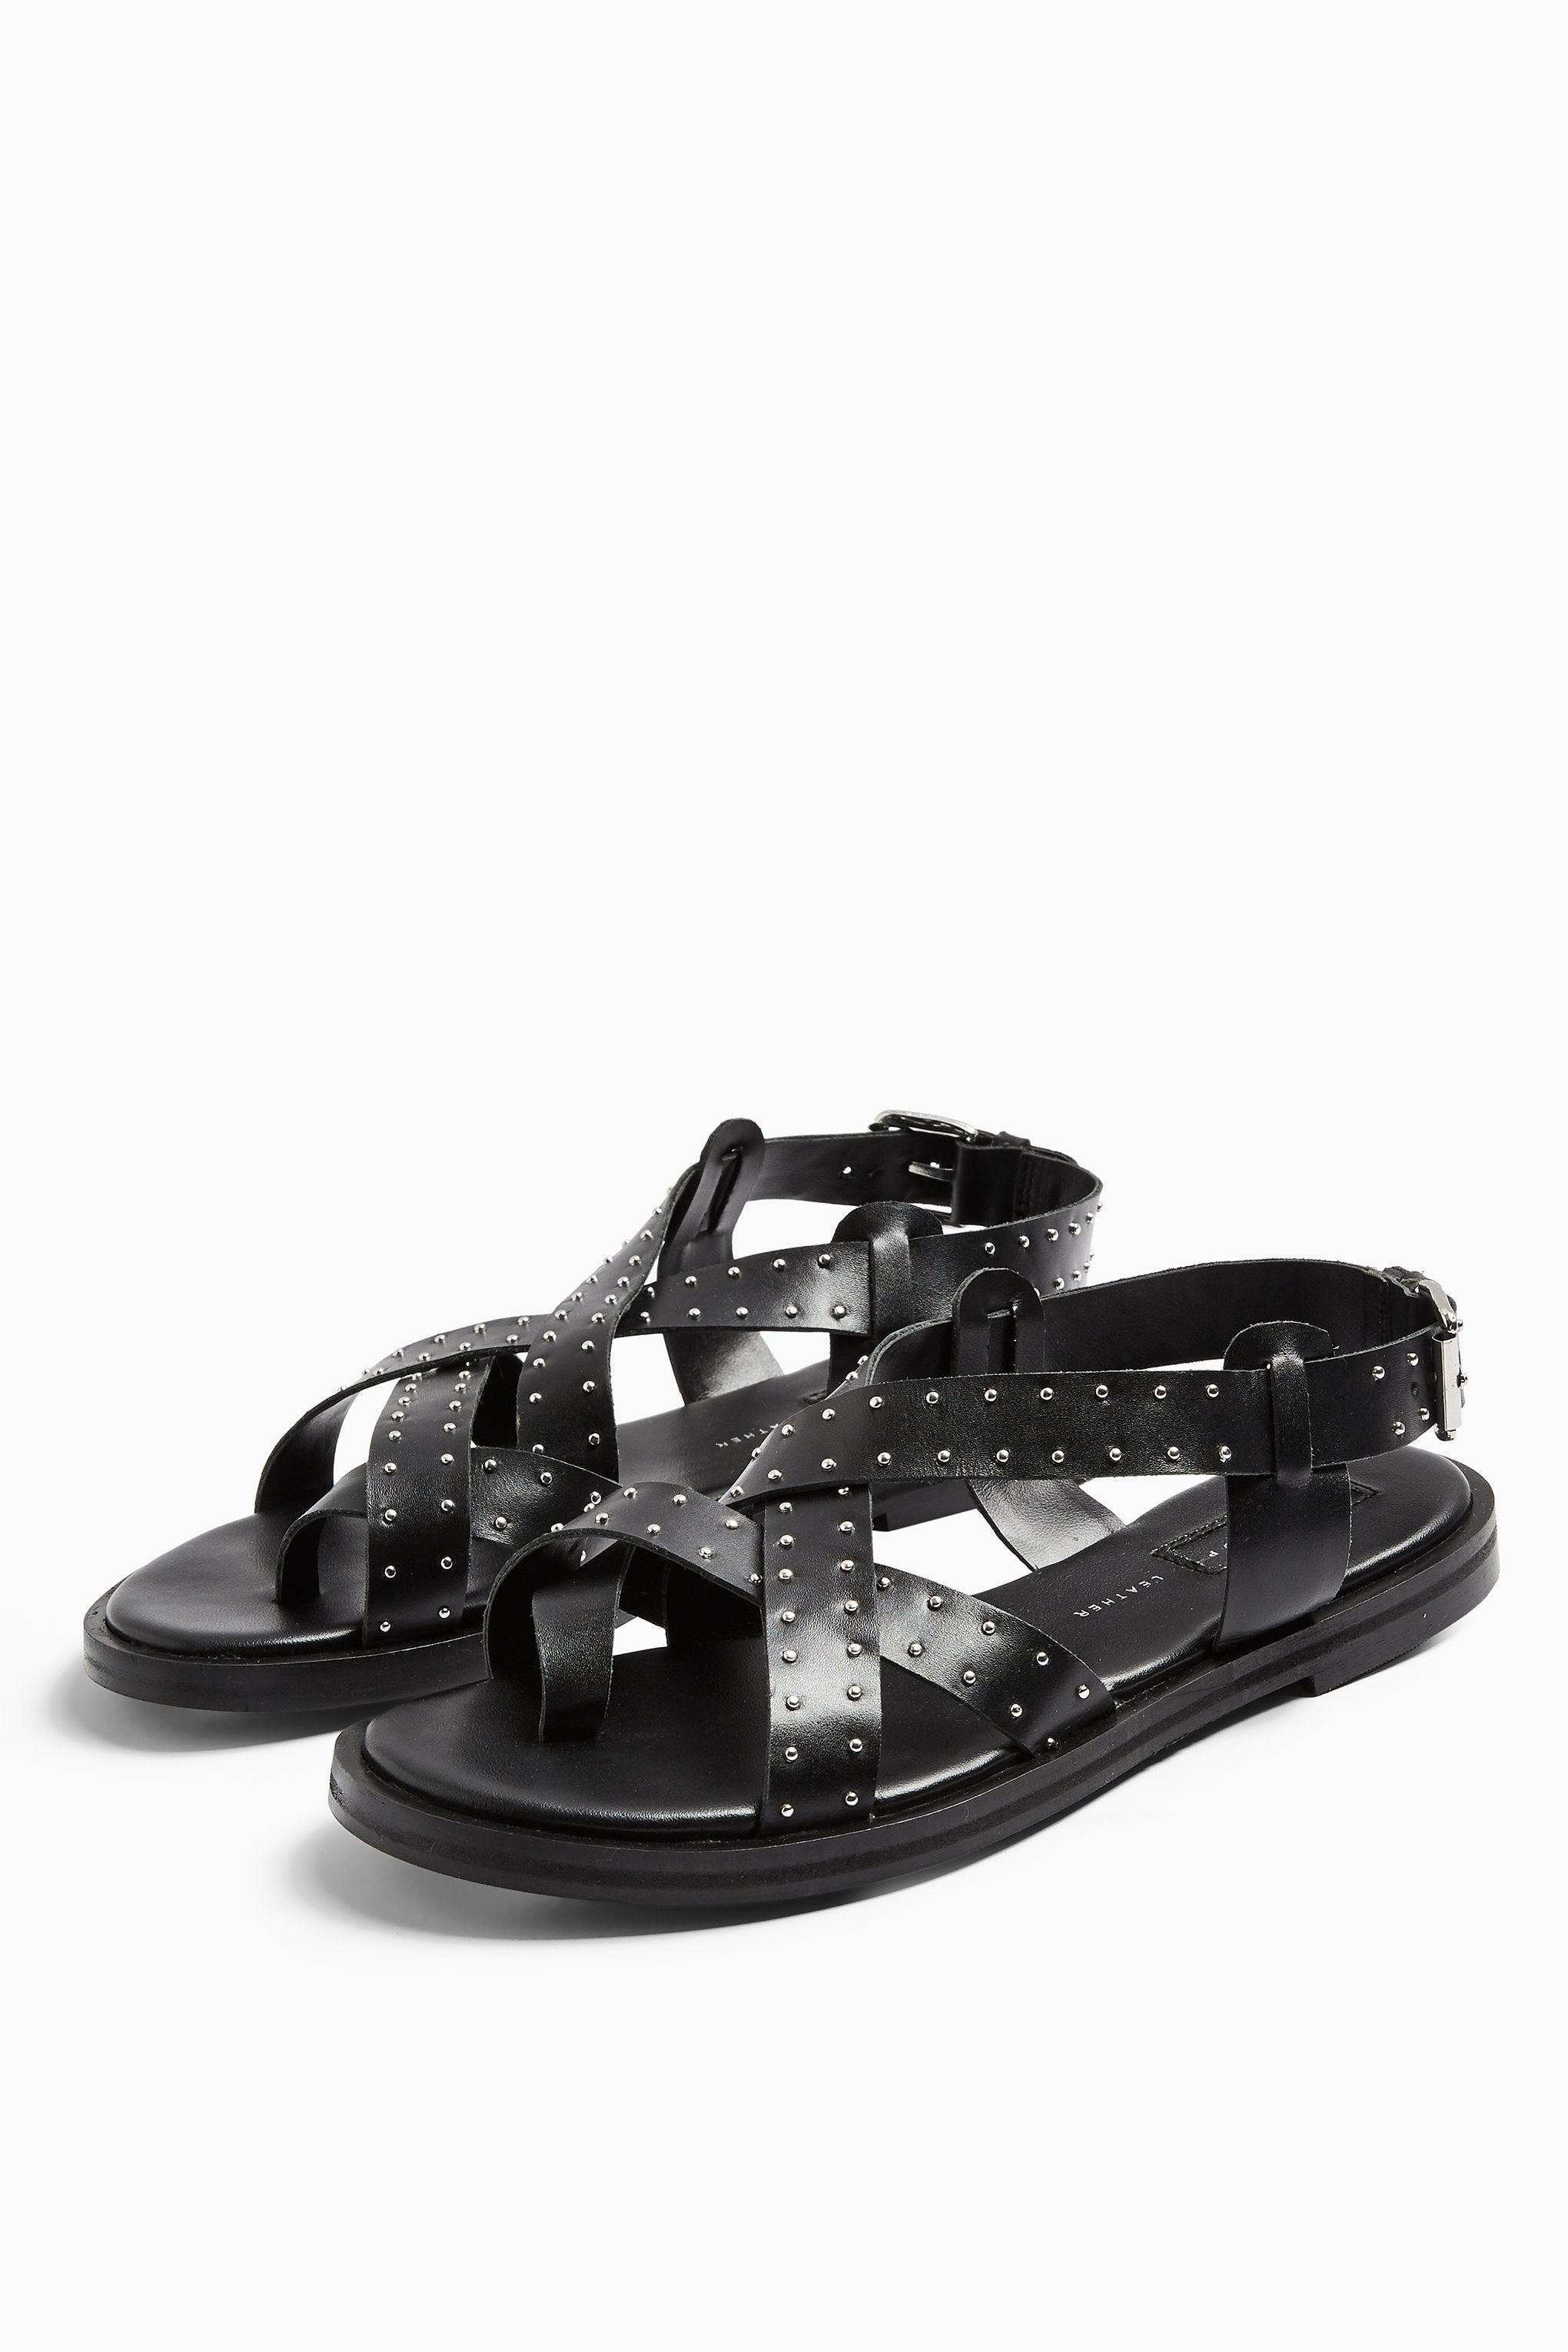 Wide-Fit Sandals For Summer 2020